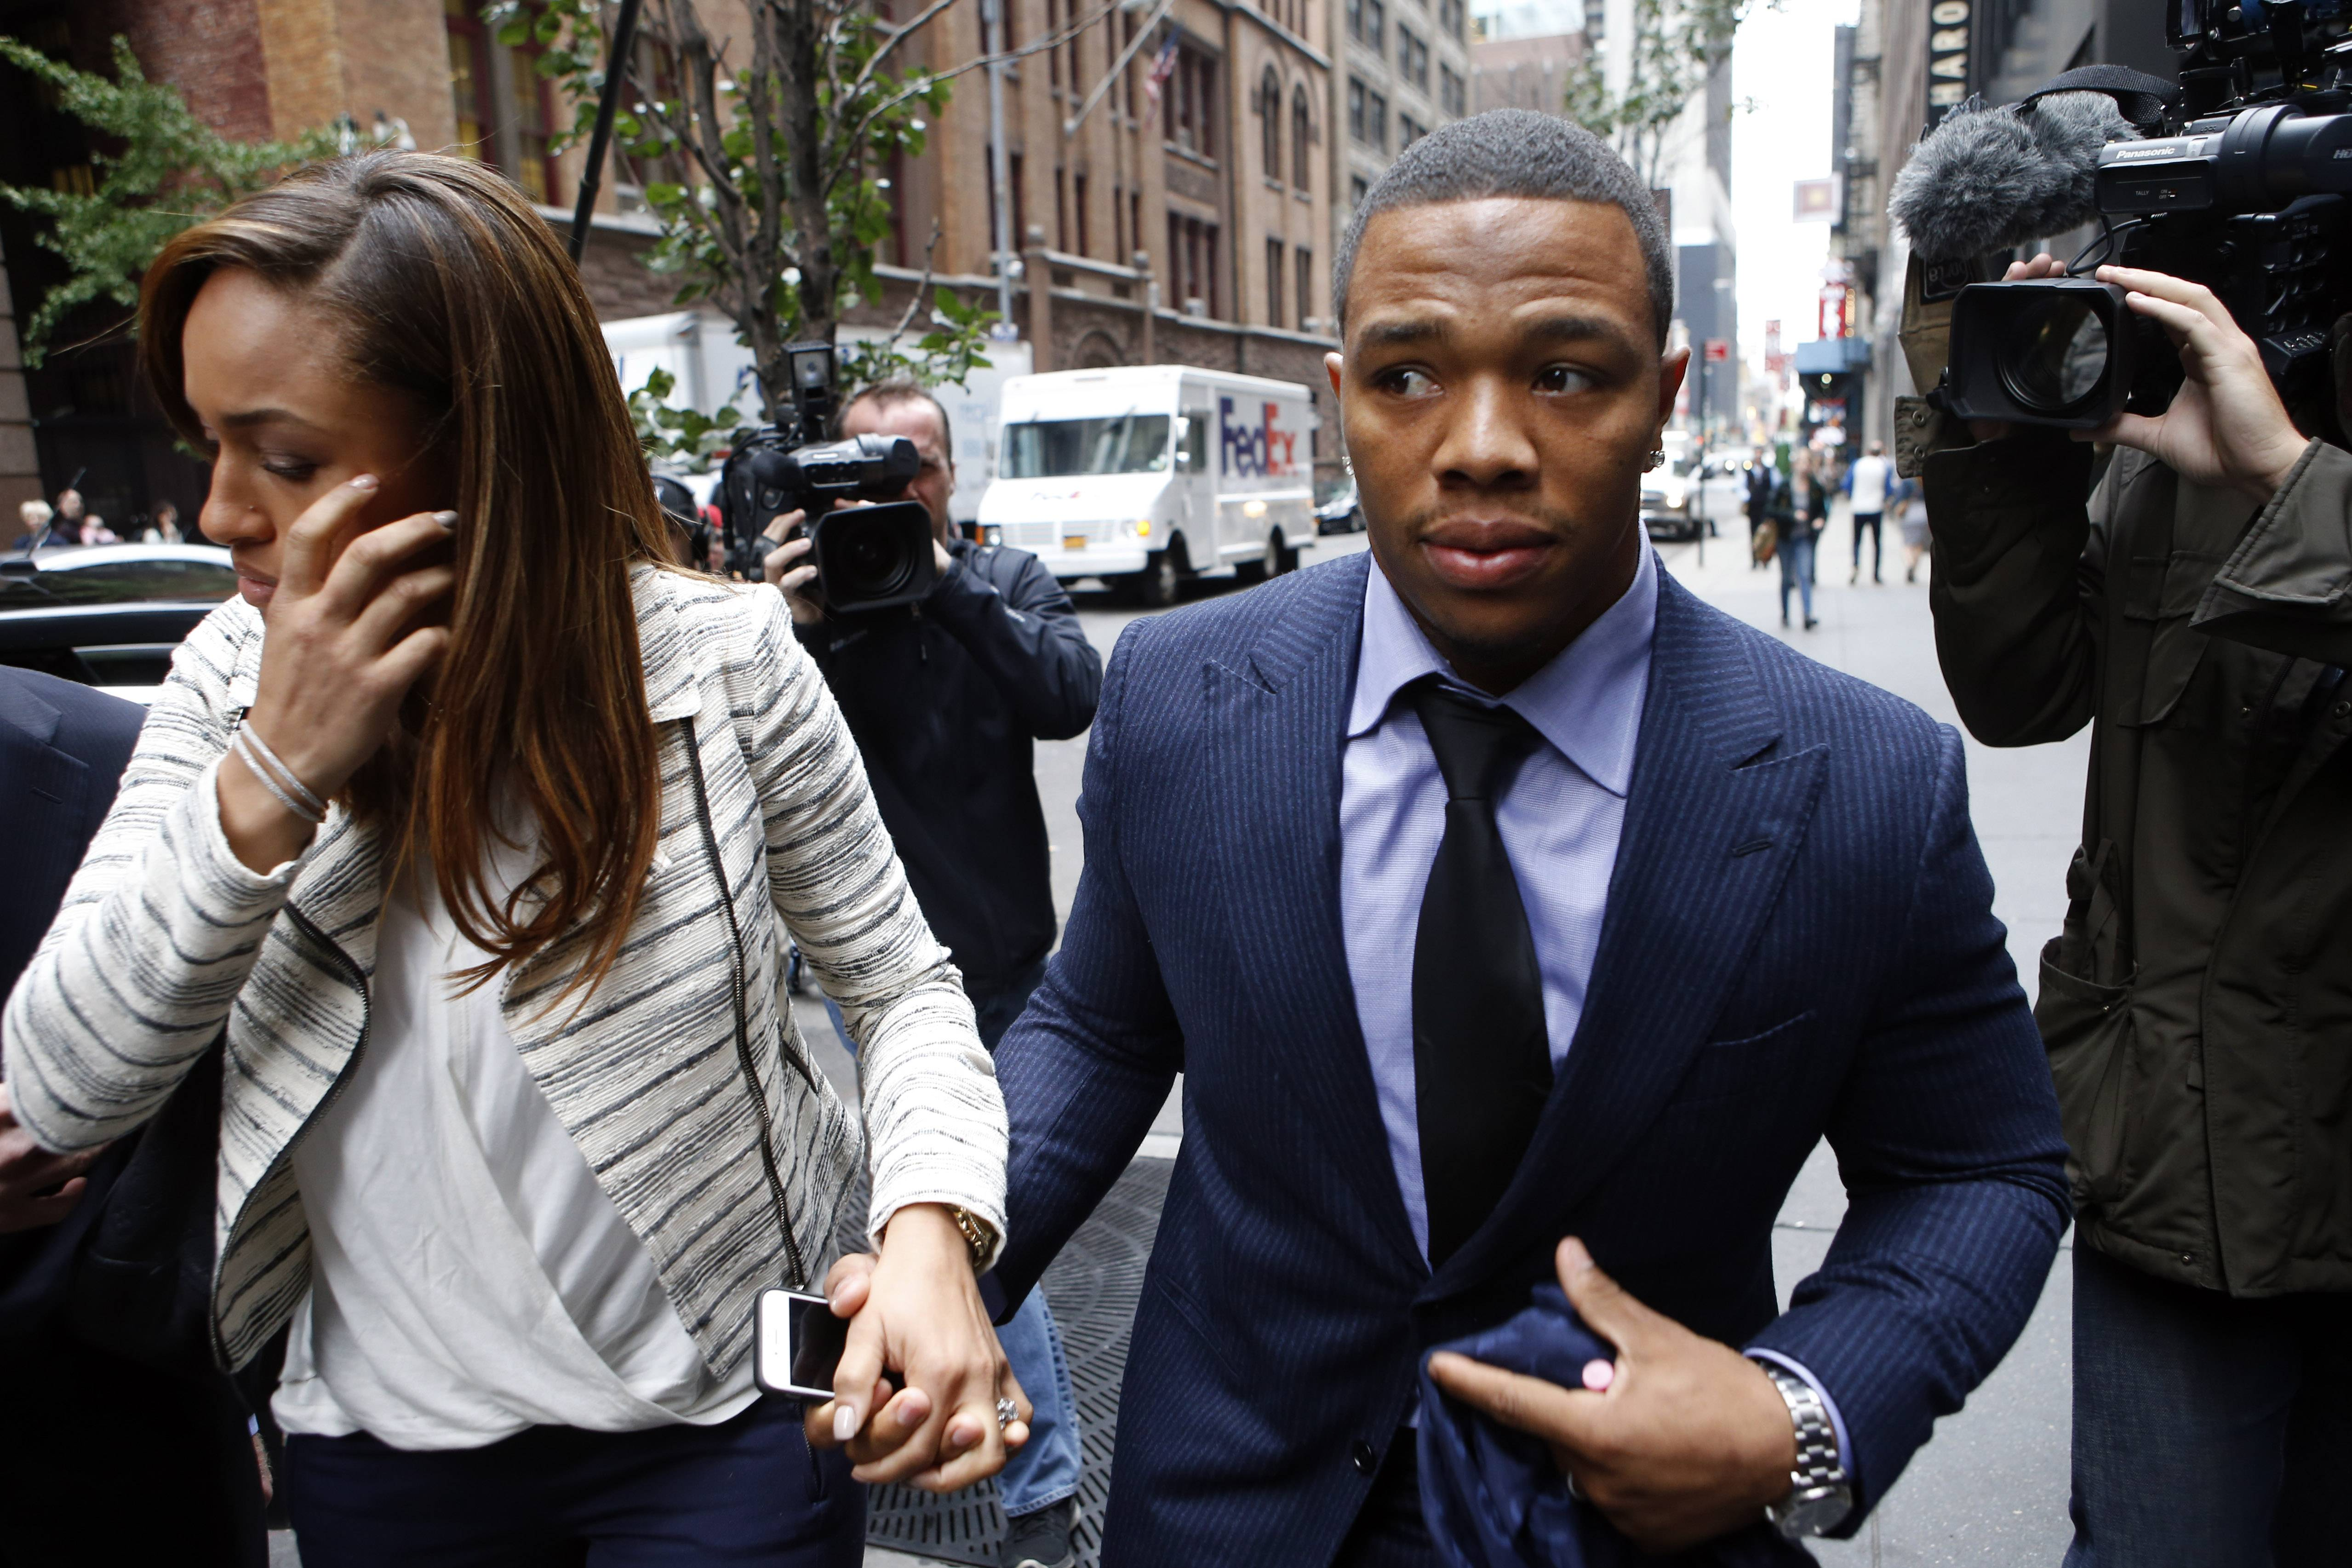 Domestic violence was big news when there was a Ray Rice (here with his wife, Janay Palmer, in November) video going viral, but the media has moved on — until the next big scandal.